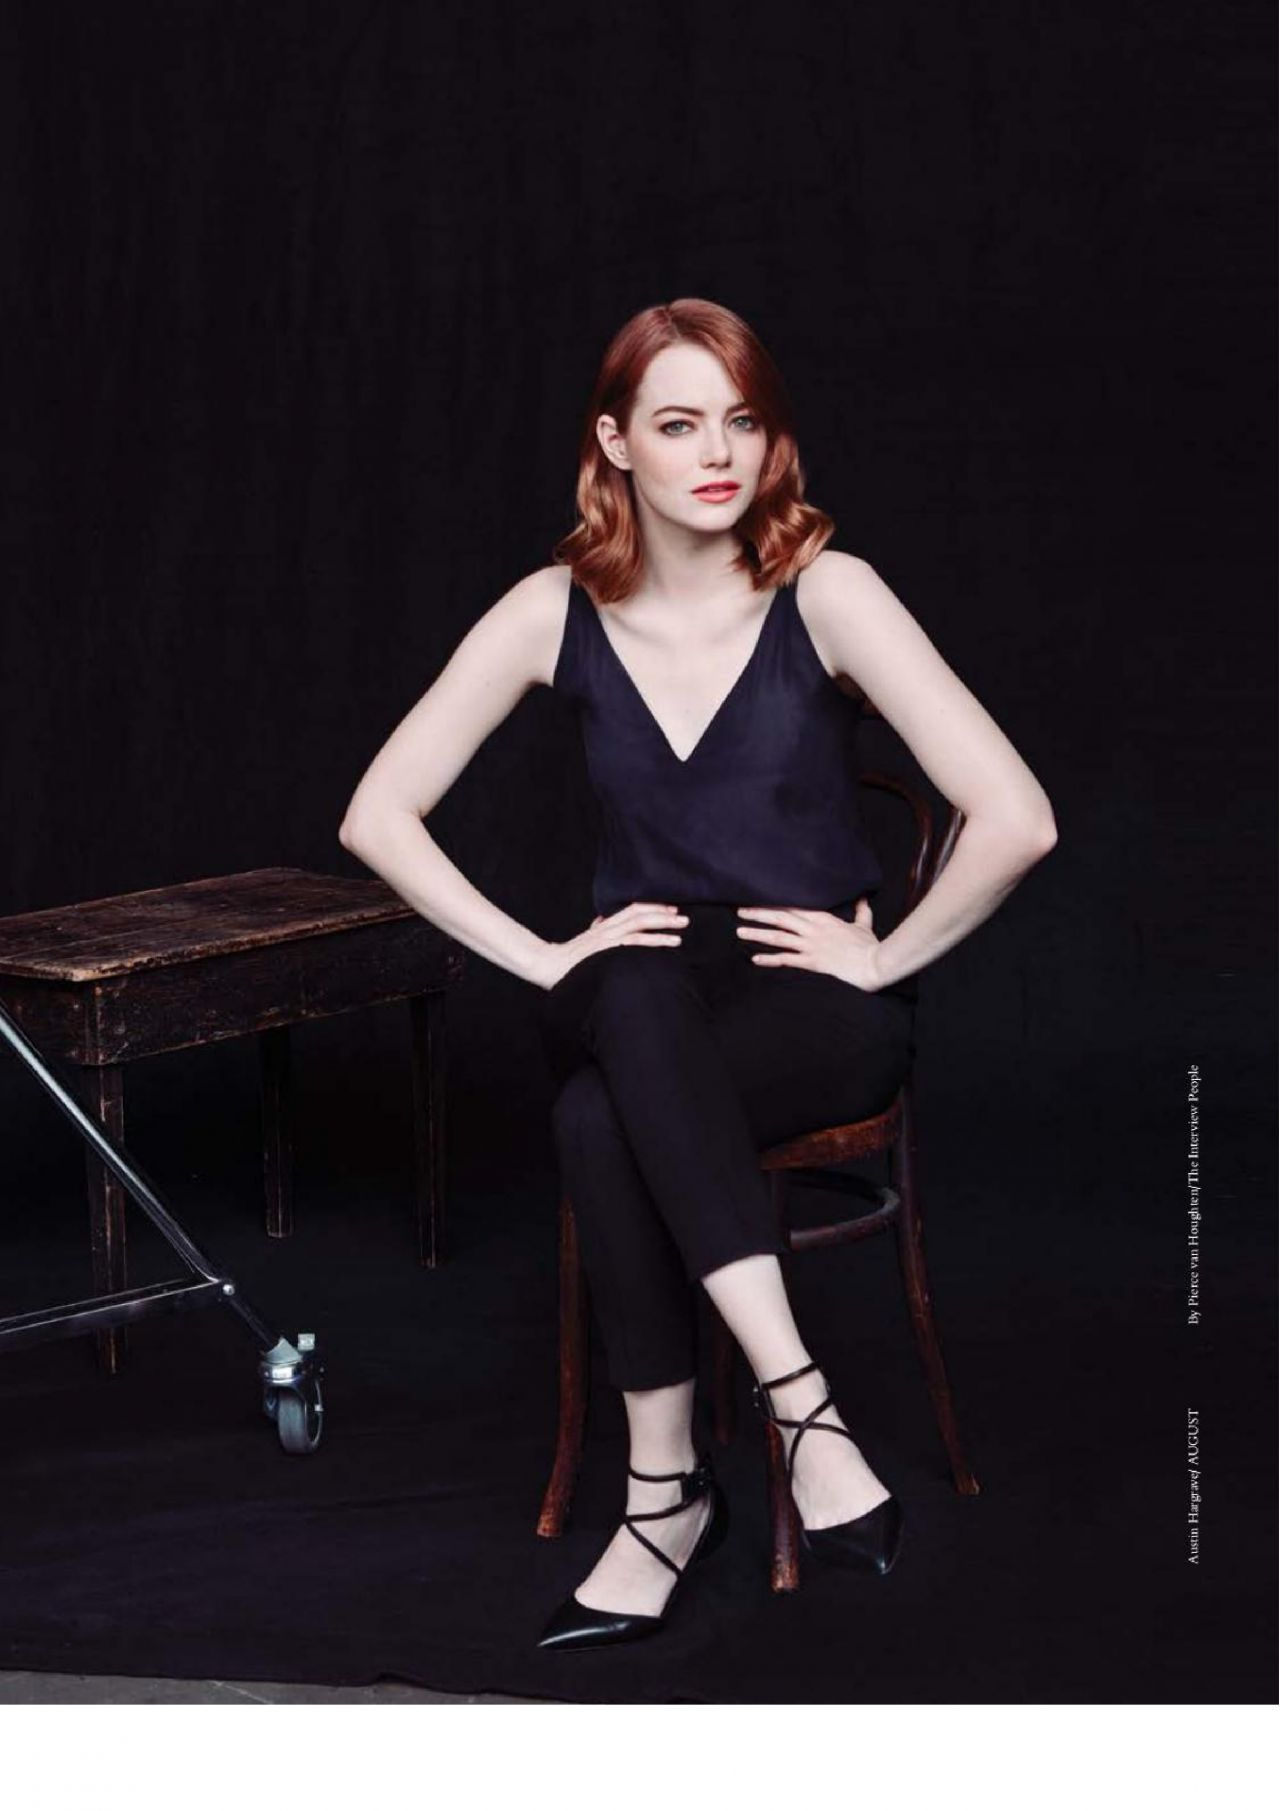 Emma stone out magazine august 2019 issue - 2019 year